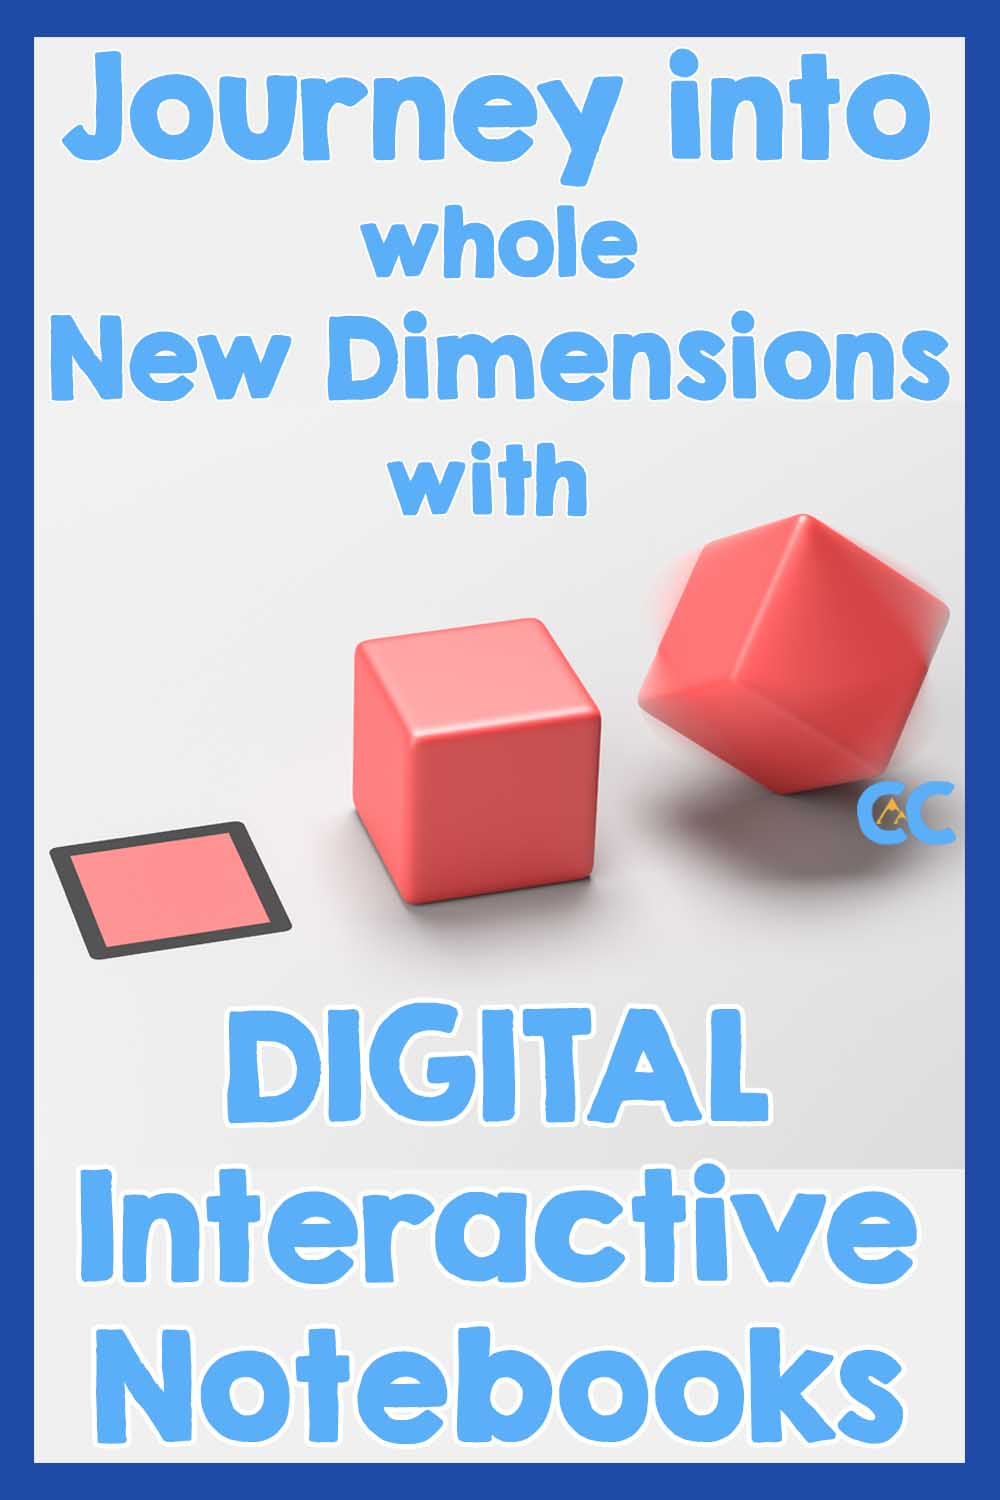 Journey into whole New Dimensions with Digital Interactive Notebooks shows a 2D shape turning into a 3D shape into a 4D shape.